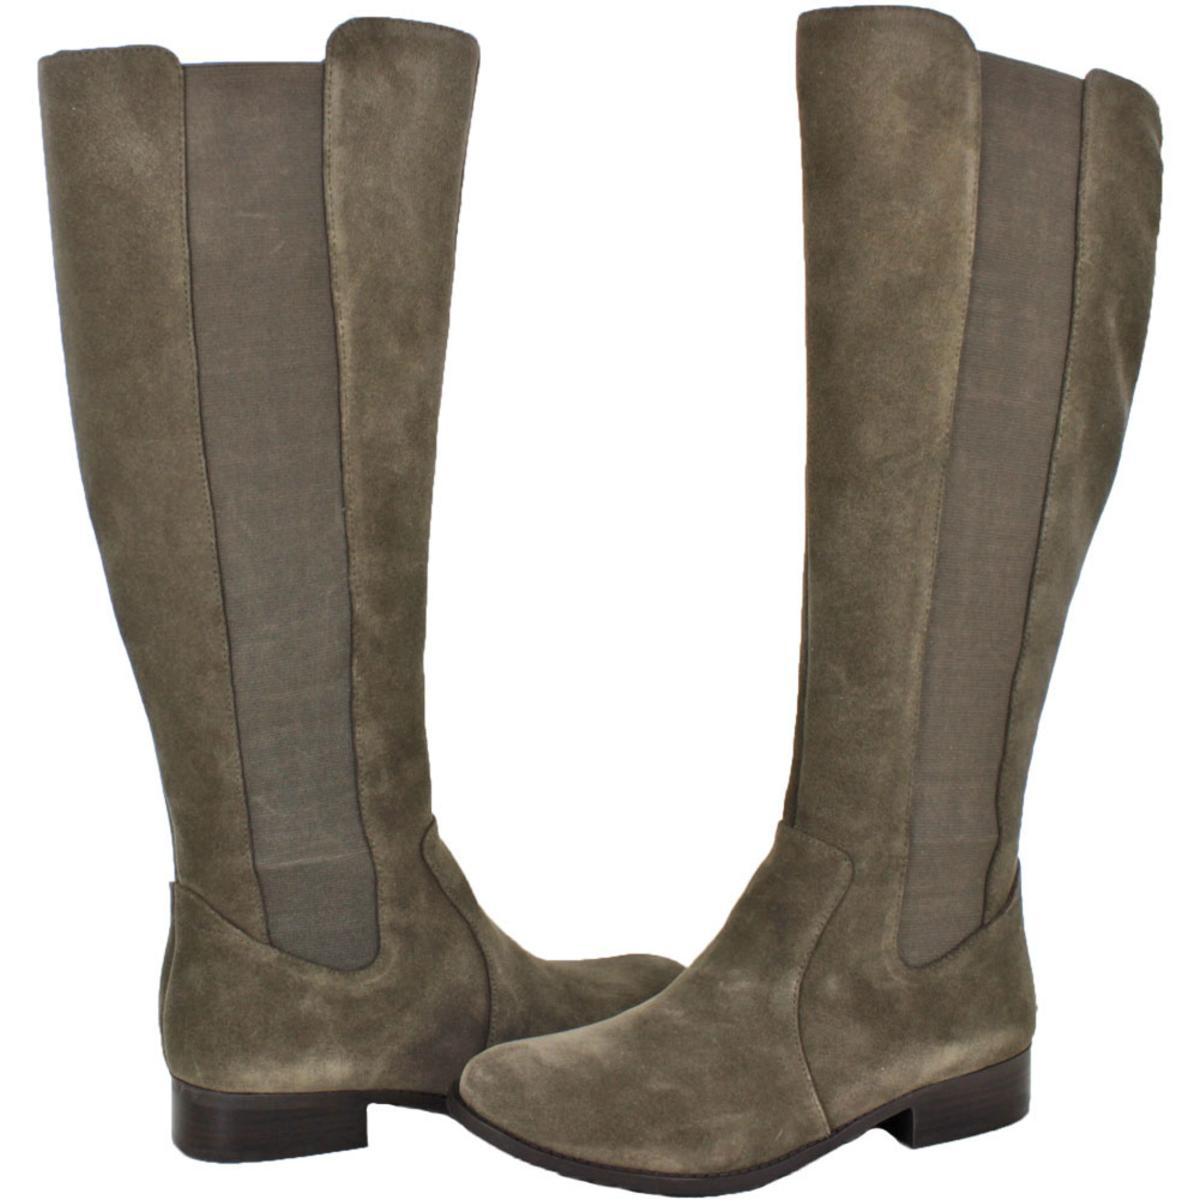 b23dccca6 Jessica Simpson Women's Ricel 2 Riding Knee High Leather Boots   eBay